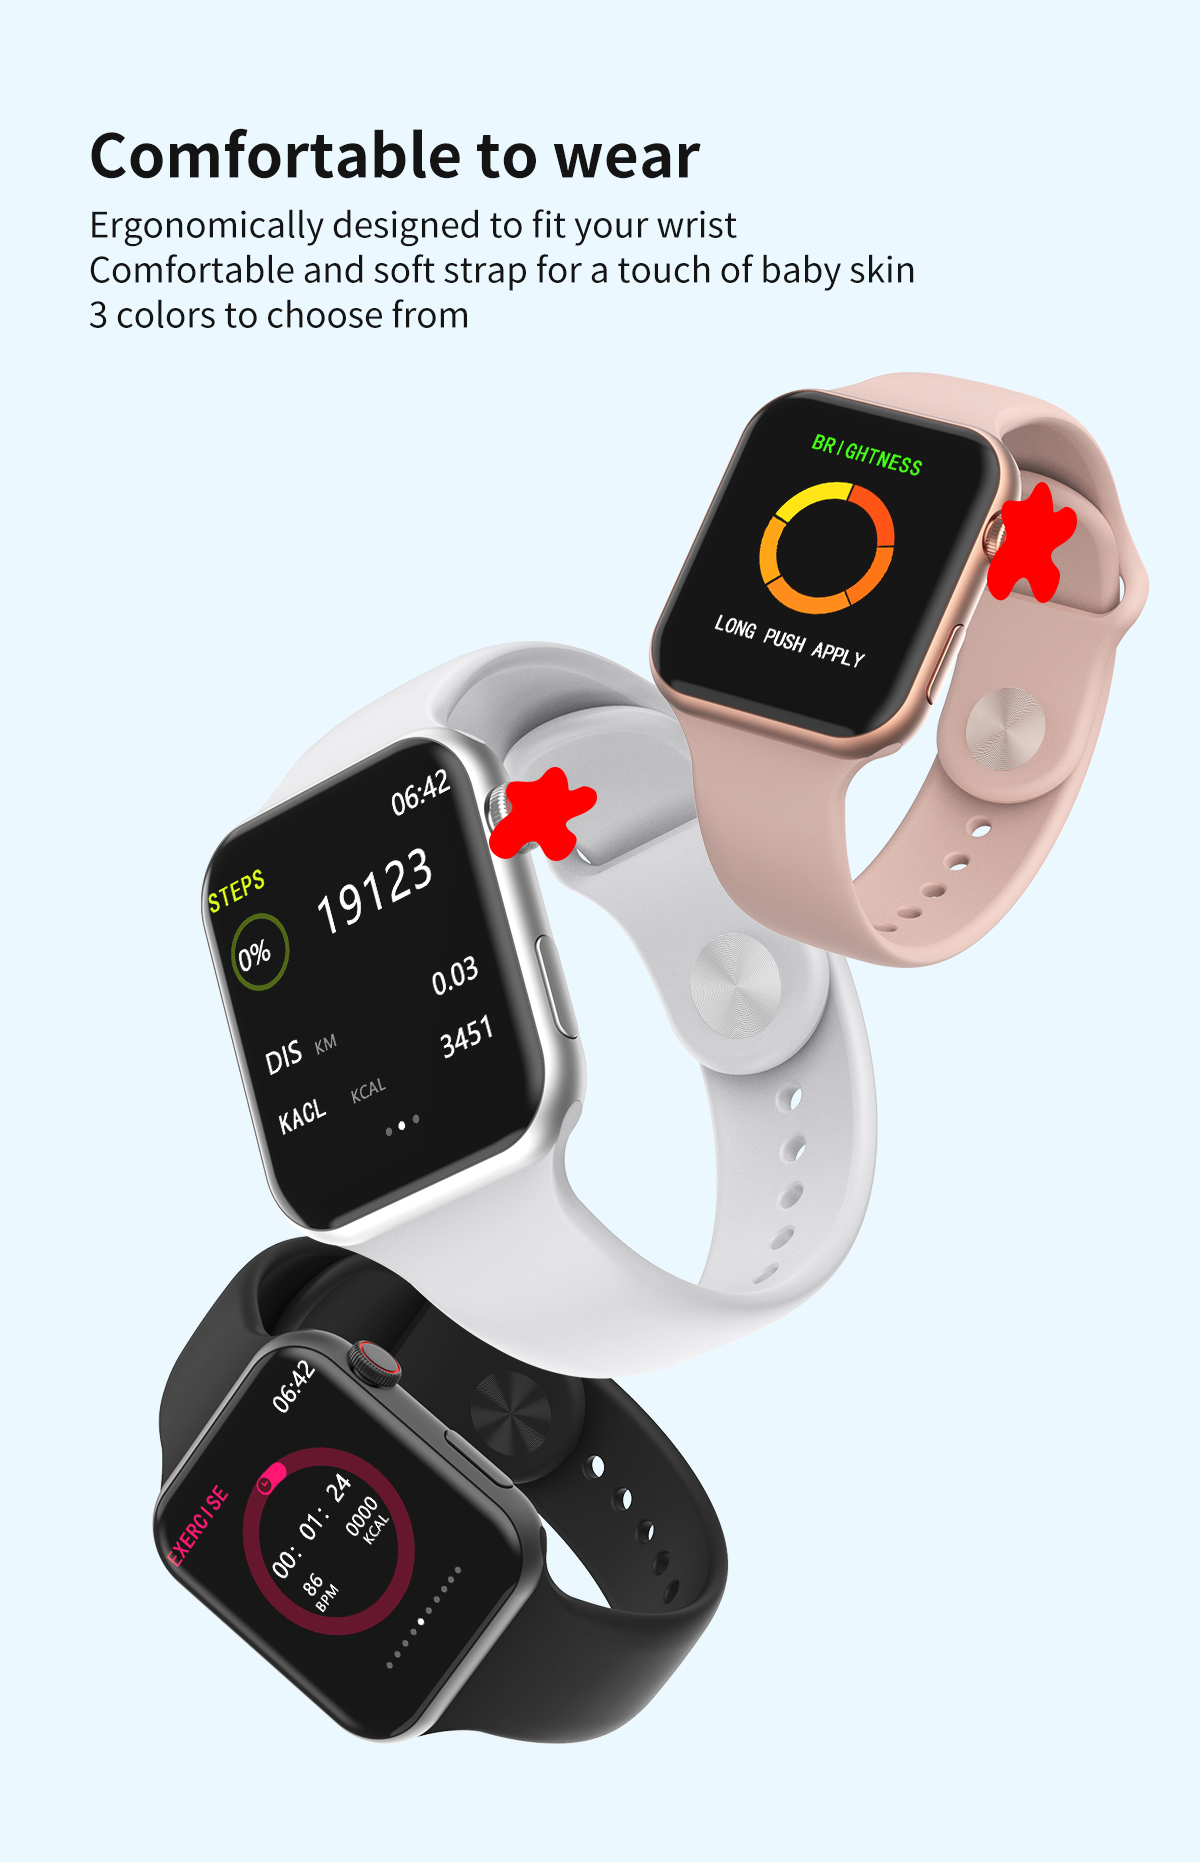 H2ebfb39738d74322bc3515df9a6049faH 696 New Style F10 Smart Watch Full touch screen Bluetooth Smartwatch Music Camera Heart Rate Monitor Waterproof Smart Bracelet